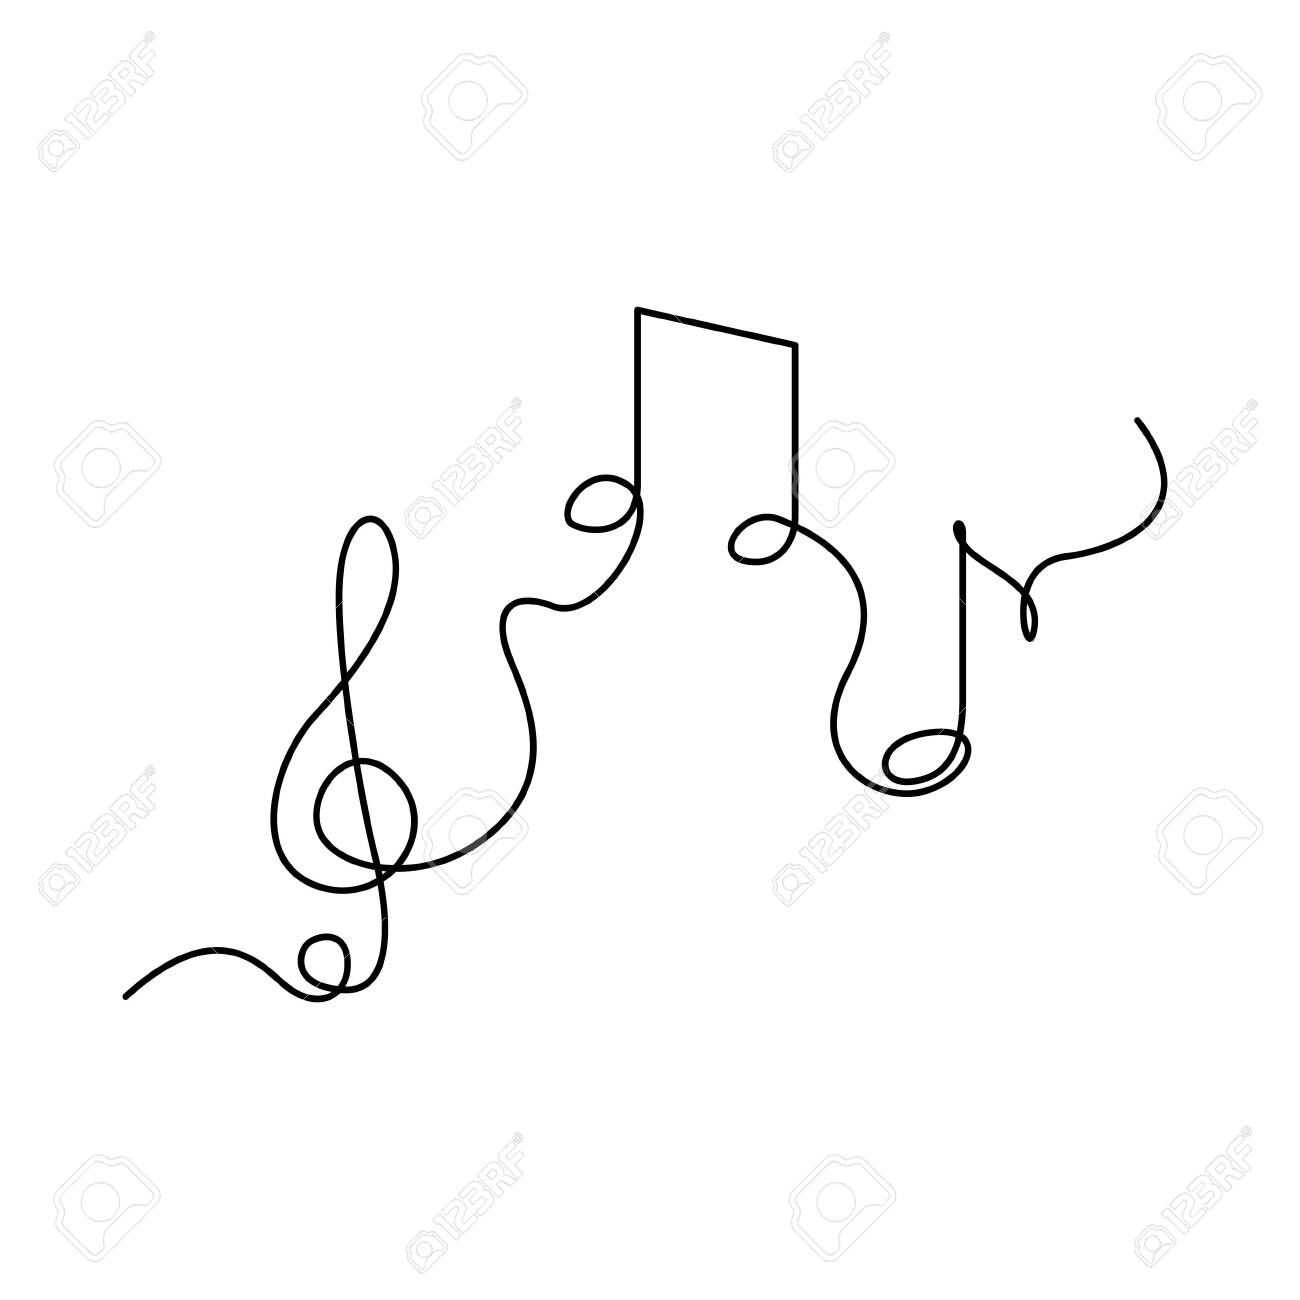 Continuous One Line Treble Clef And Notes Musical Notes A Or In 2020 Line Art Flowers Line Art Drawings Music Notes Drawing